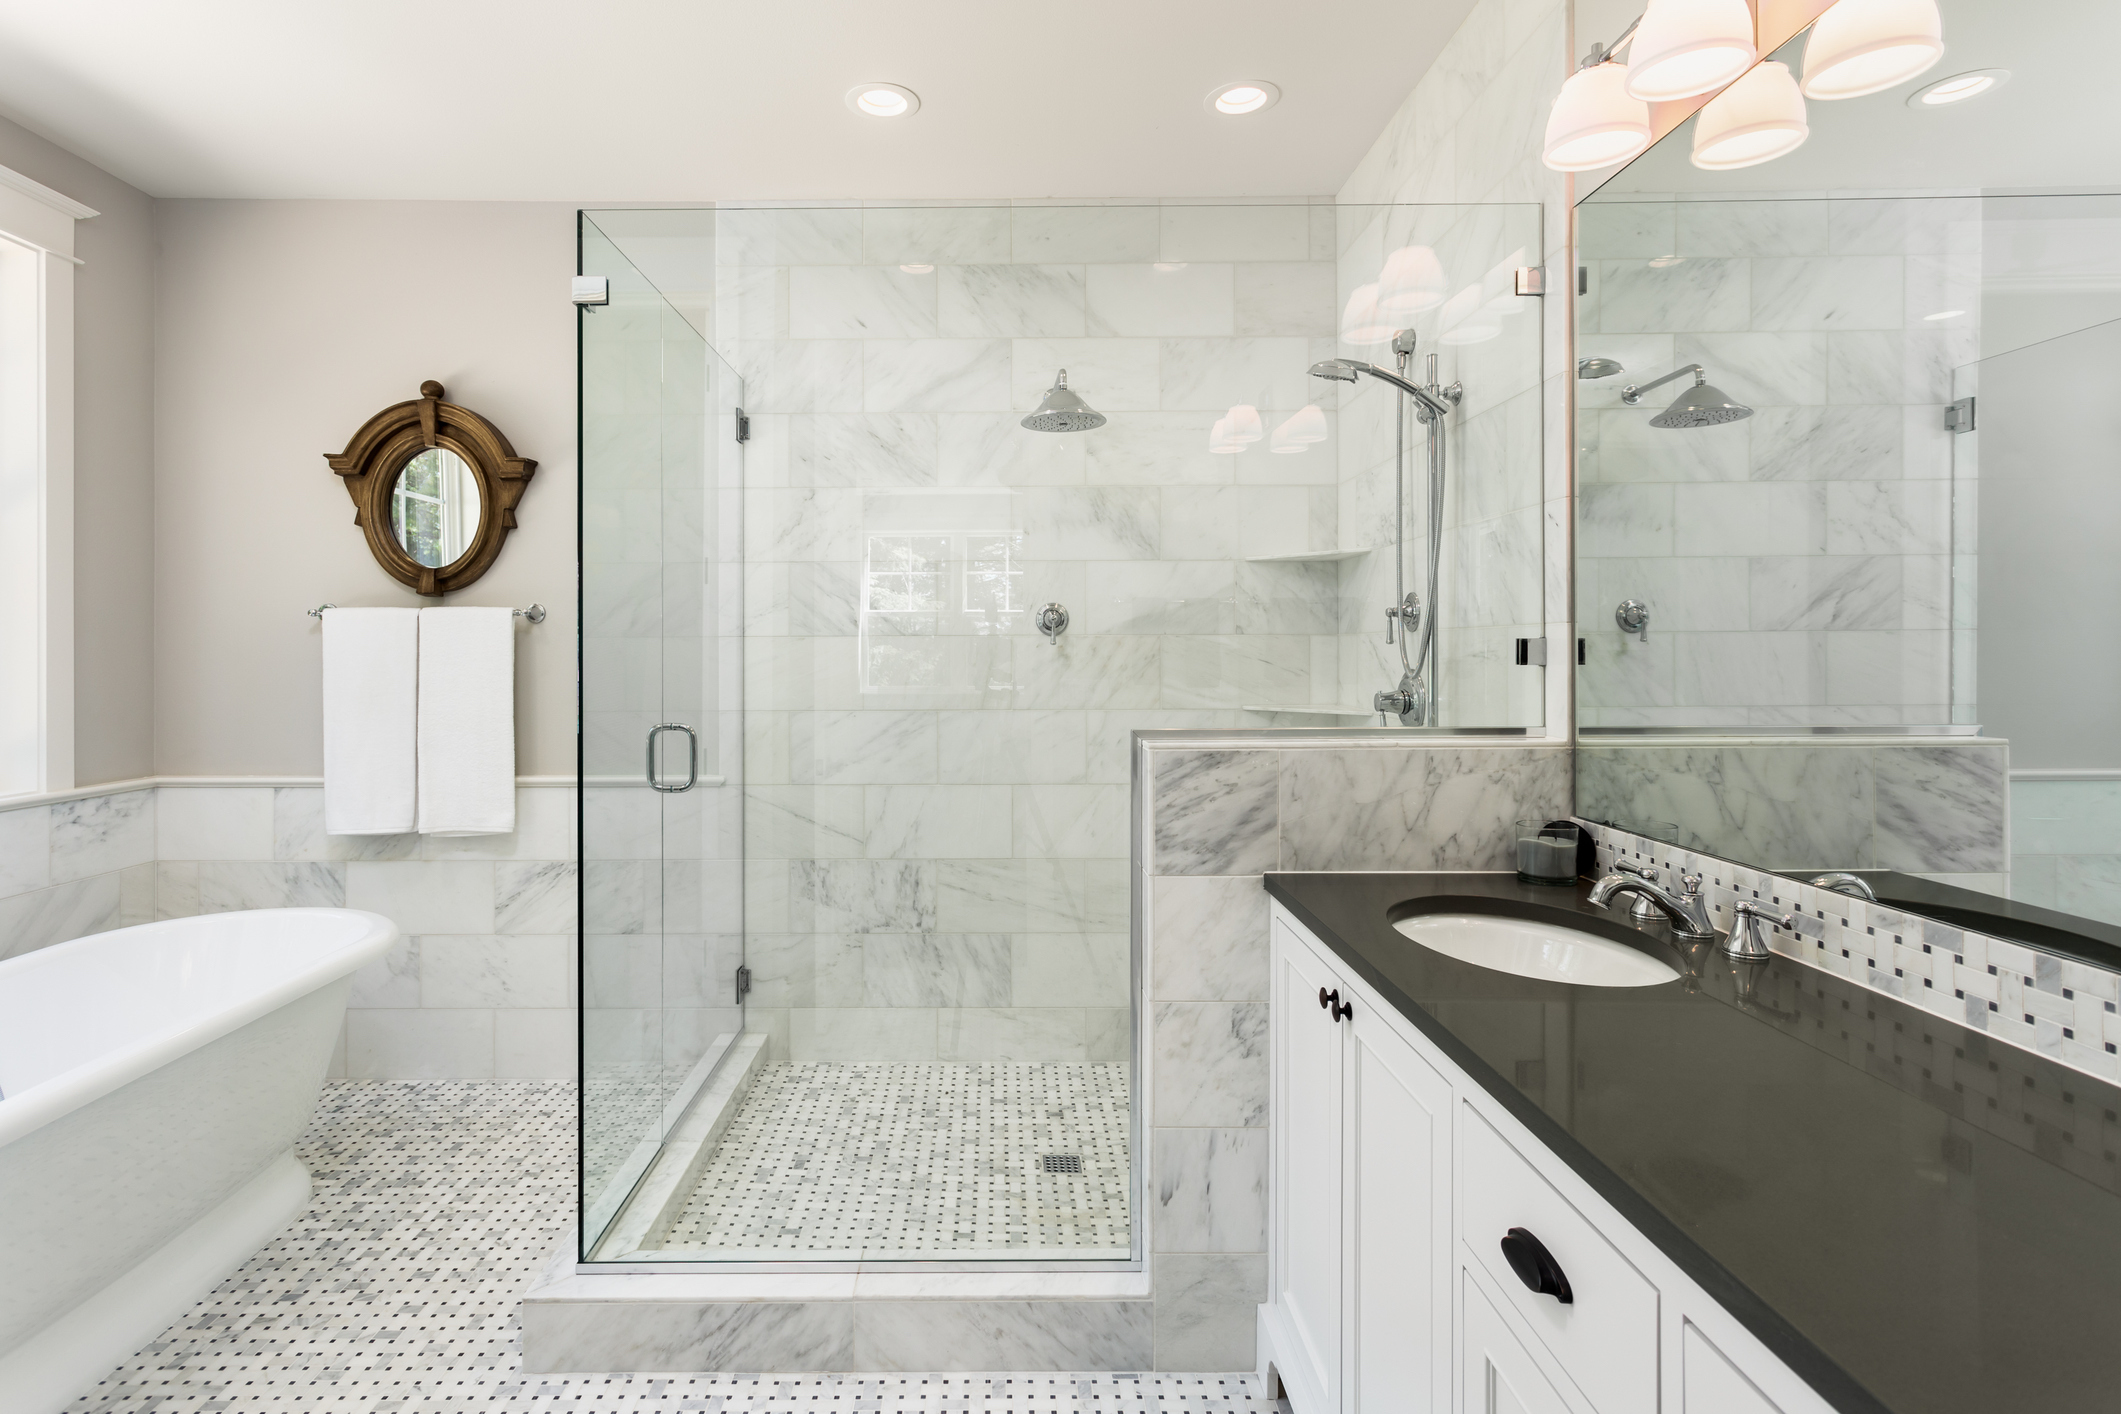 Beautiful master bathroom with shower, bathtub, and sink,  with high end furnishings, lights on